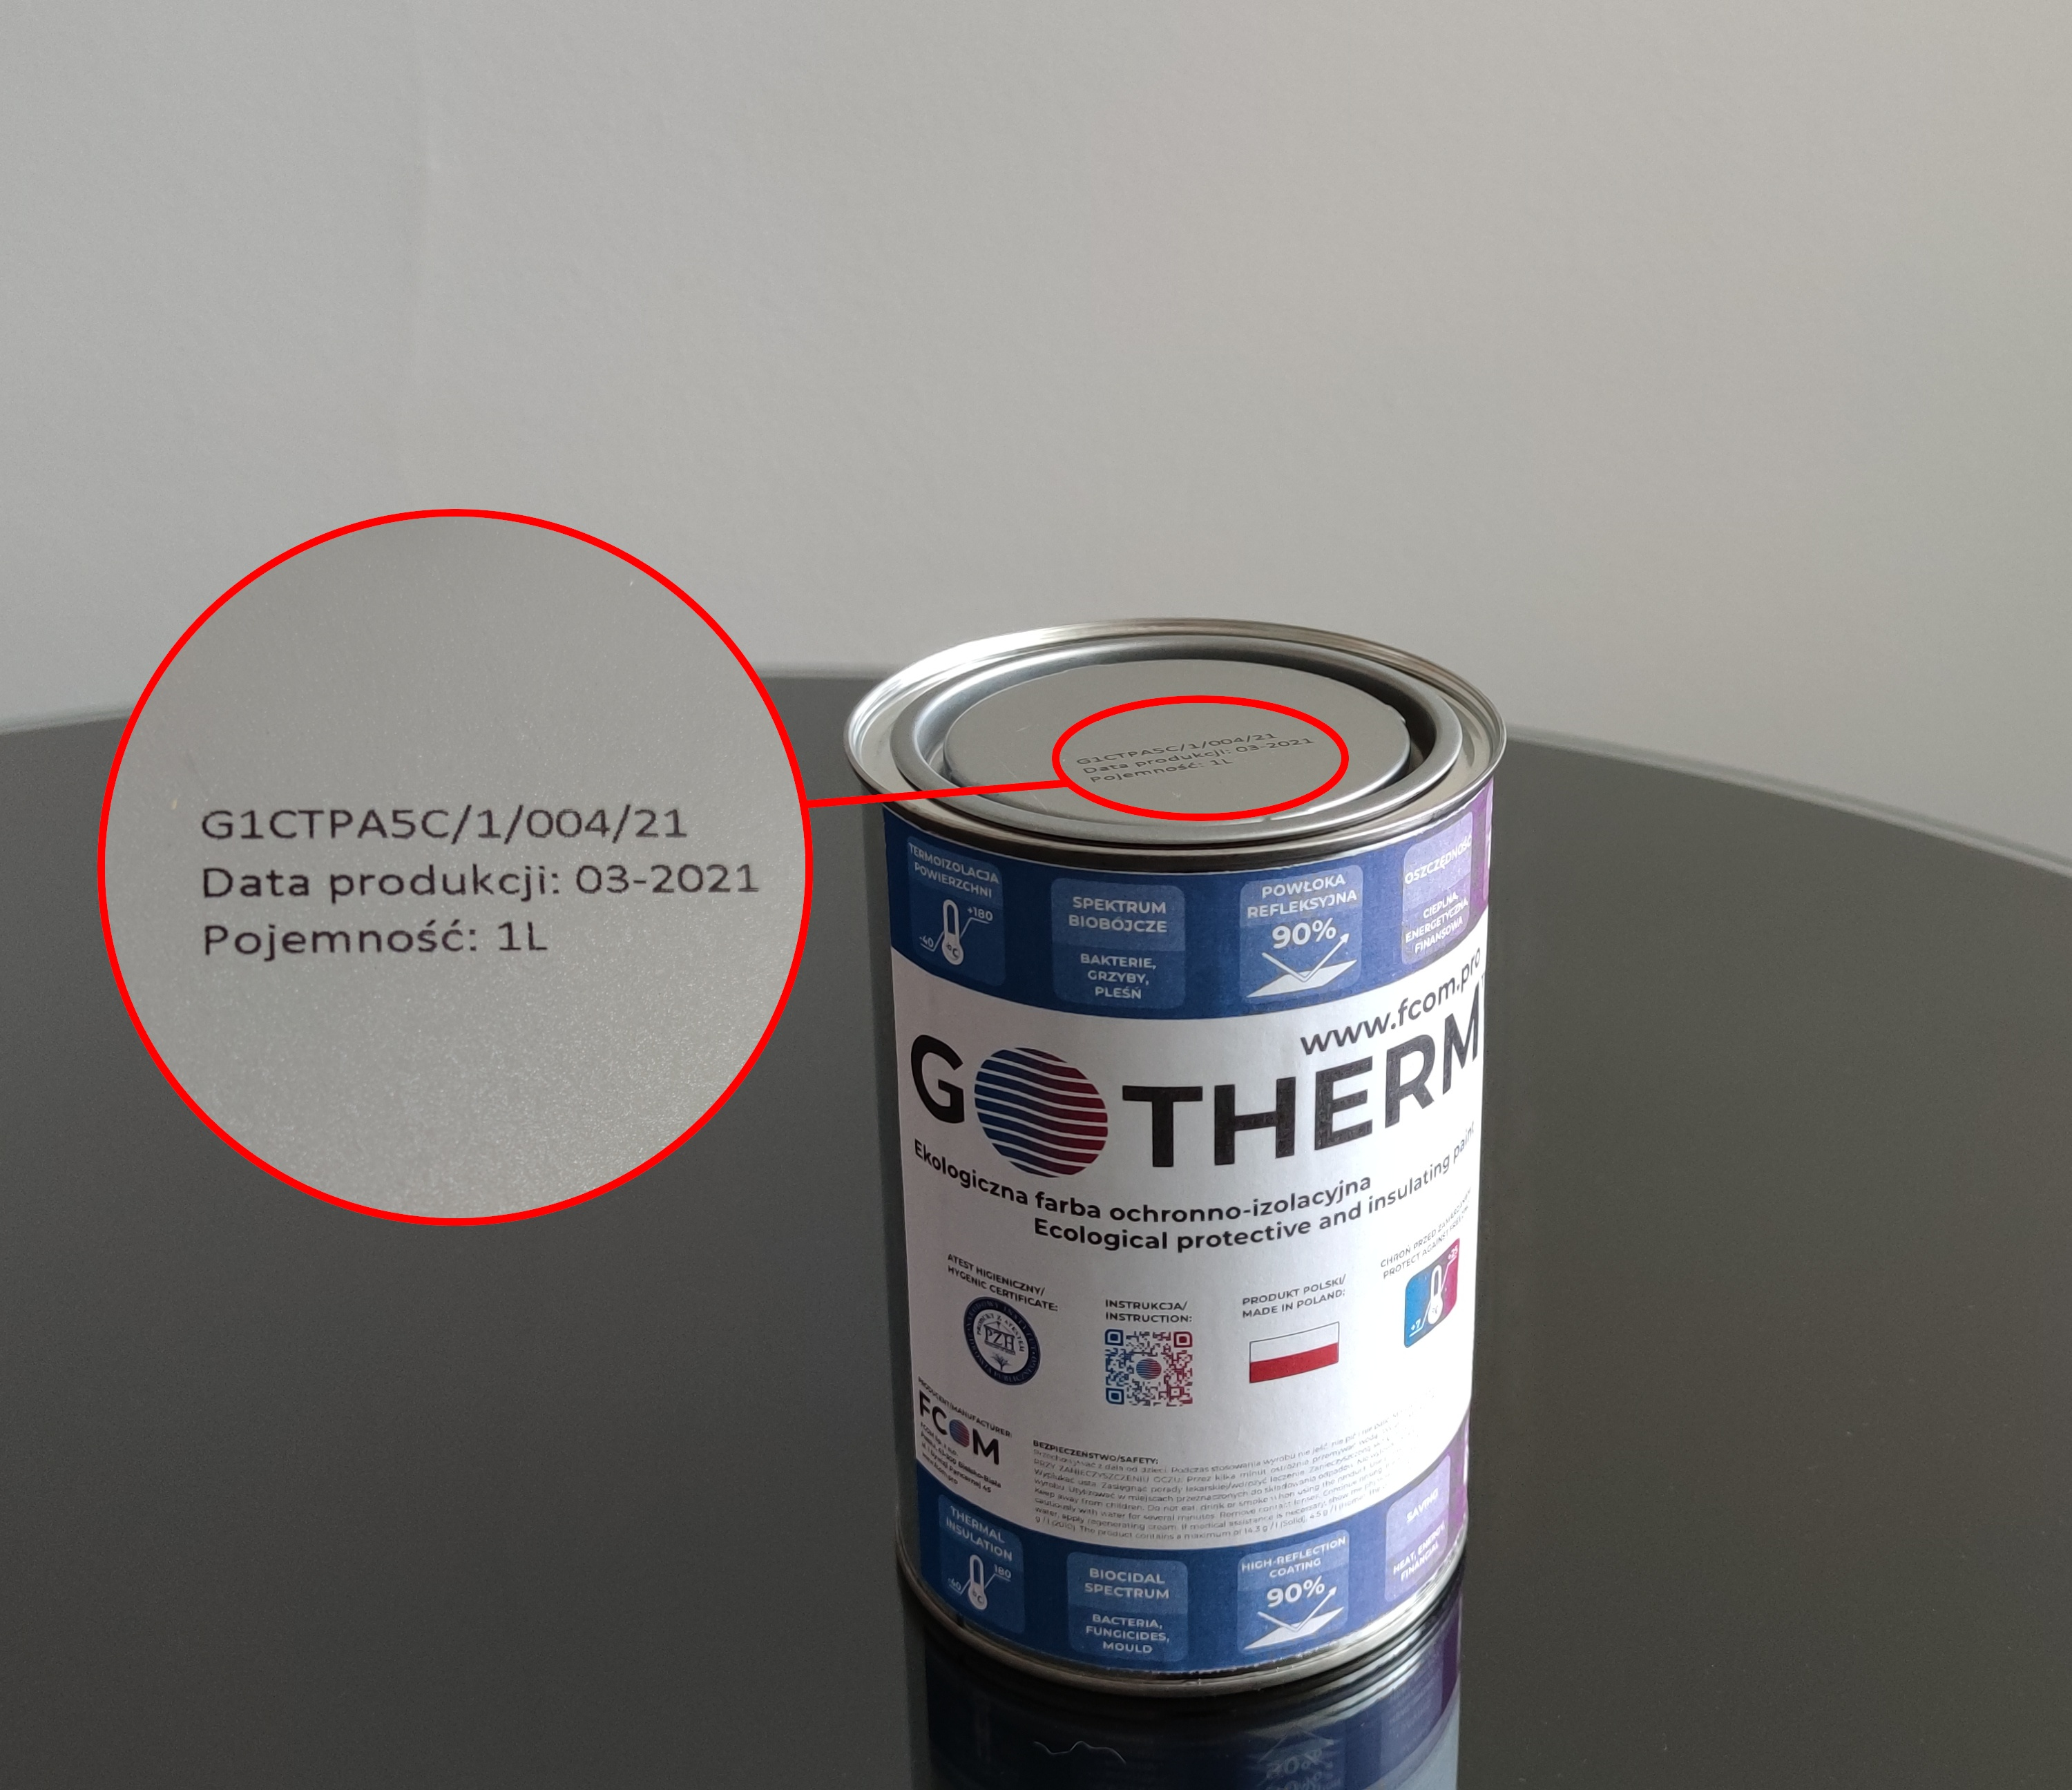 Thermal insulation paint - where to check the production date